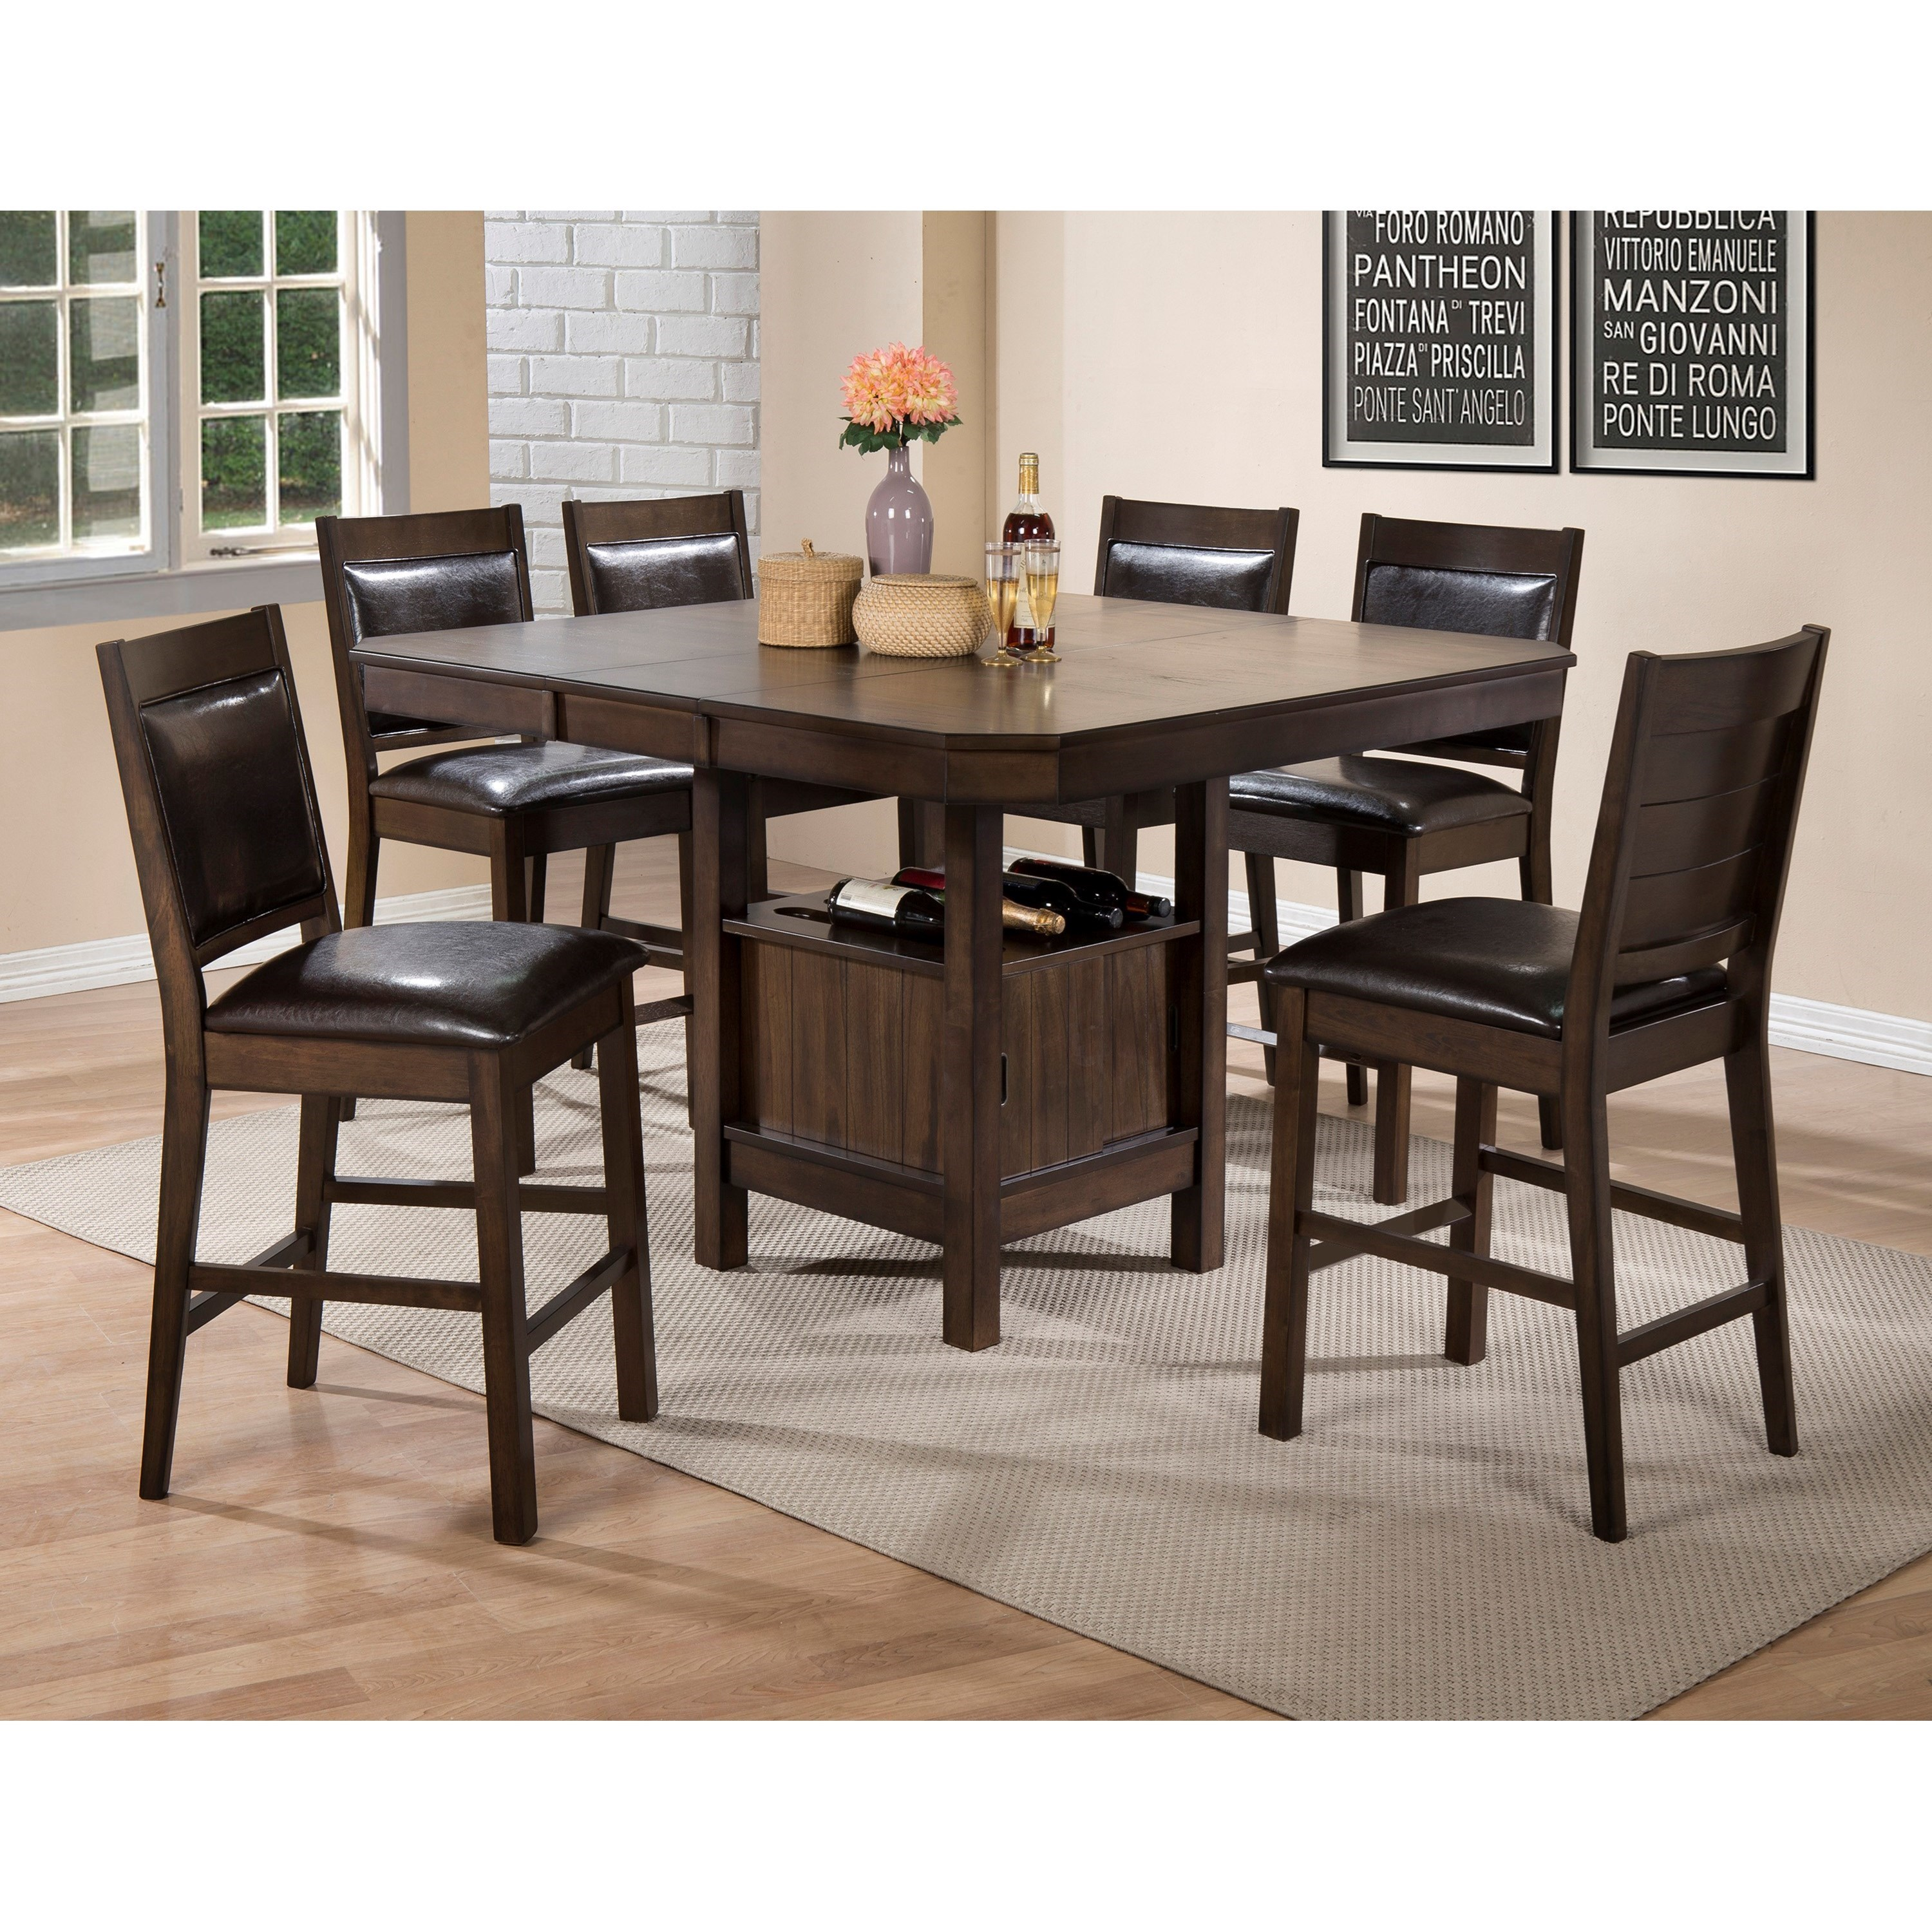 Crown Mark Marlow Counter Height Table and Chair Set with  : marlow 8291615812847t 5454 topleg6x2847s 24 b1jpgscalebothampwidth500ampheight500ampfsharpen25ampdown from www.furniture-fair.net size 500 x 500 jpeg 59kB